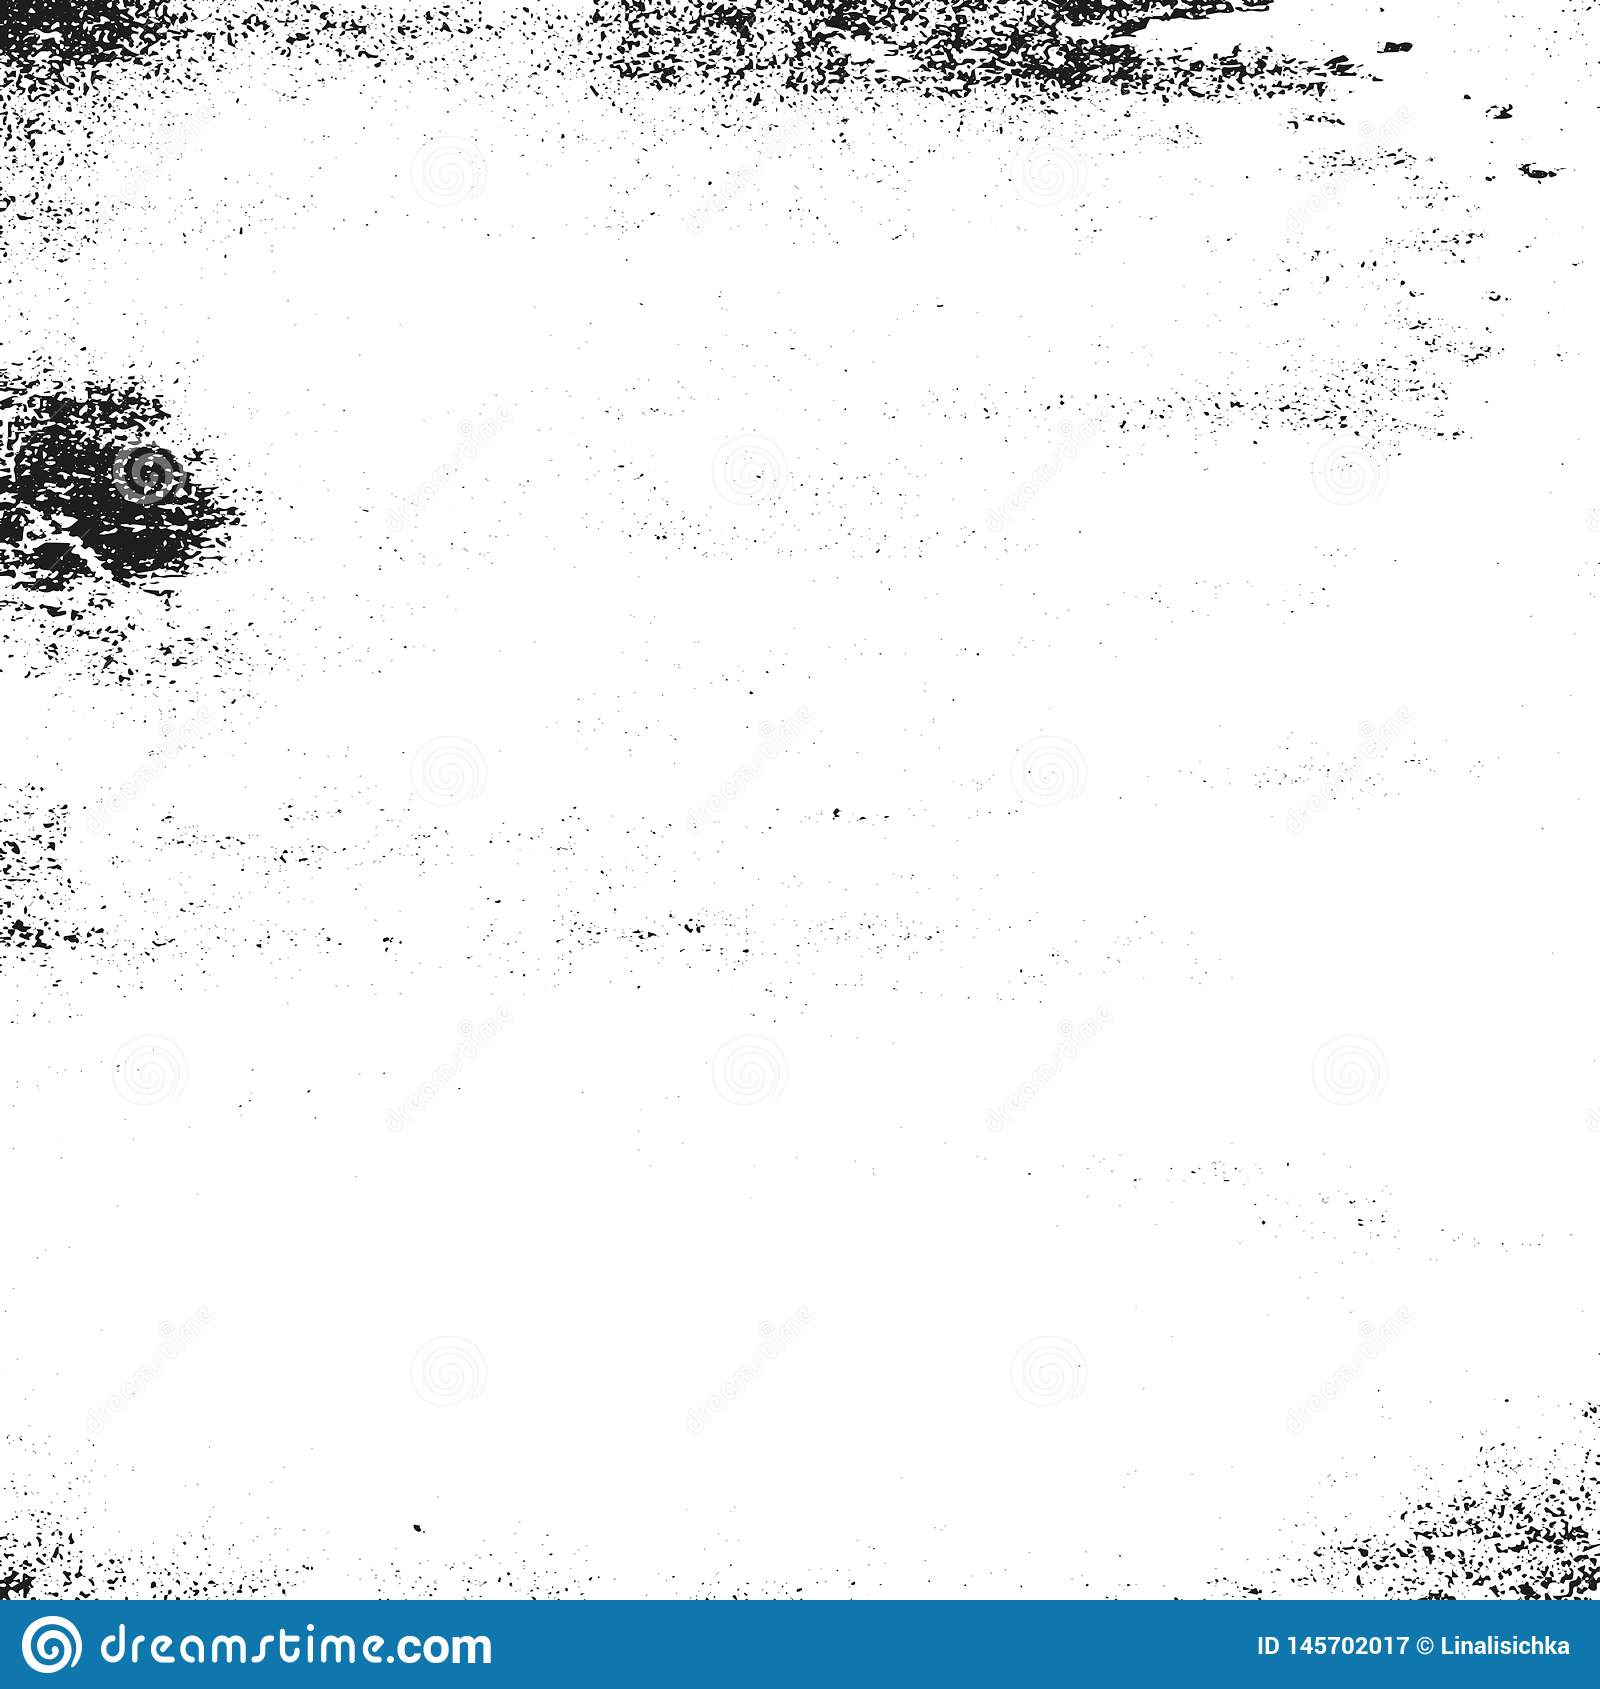 Grunge texture, art of dirty background, vector